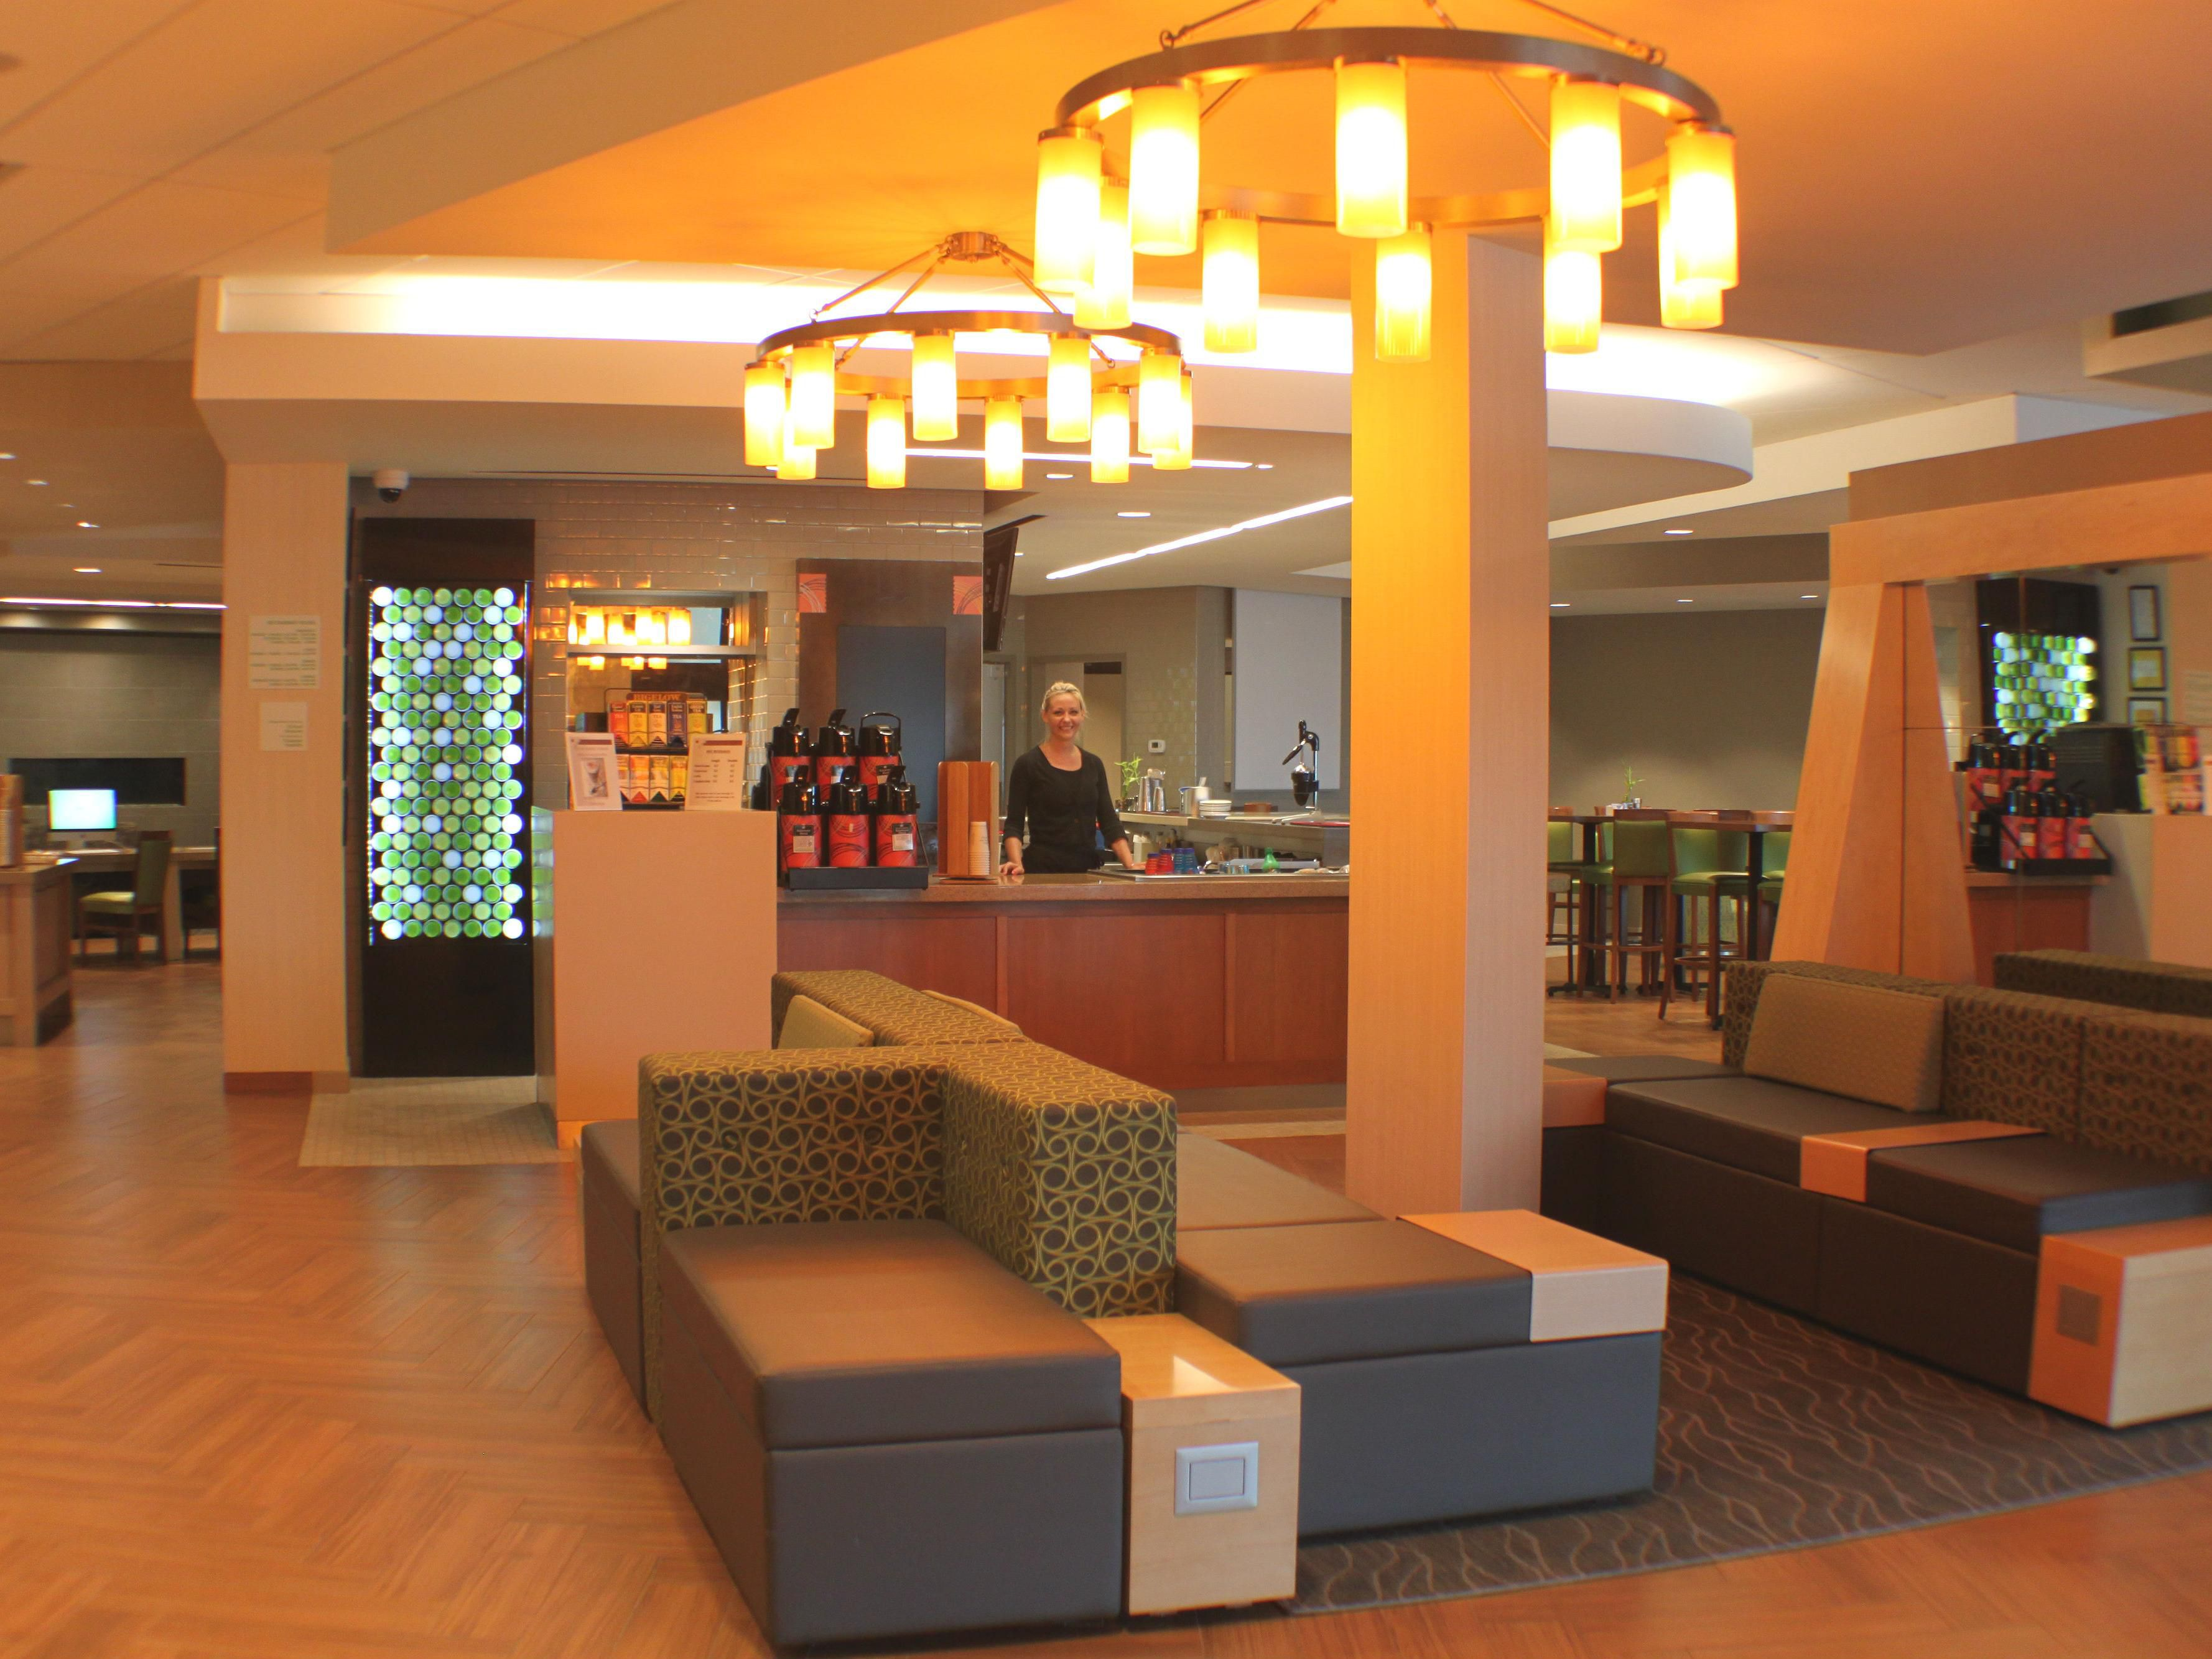 Hotel active lobby, cafe area and Market Place